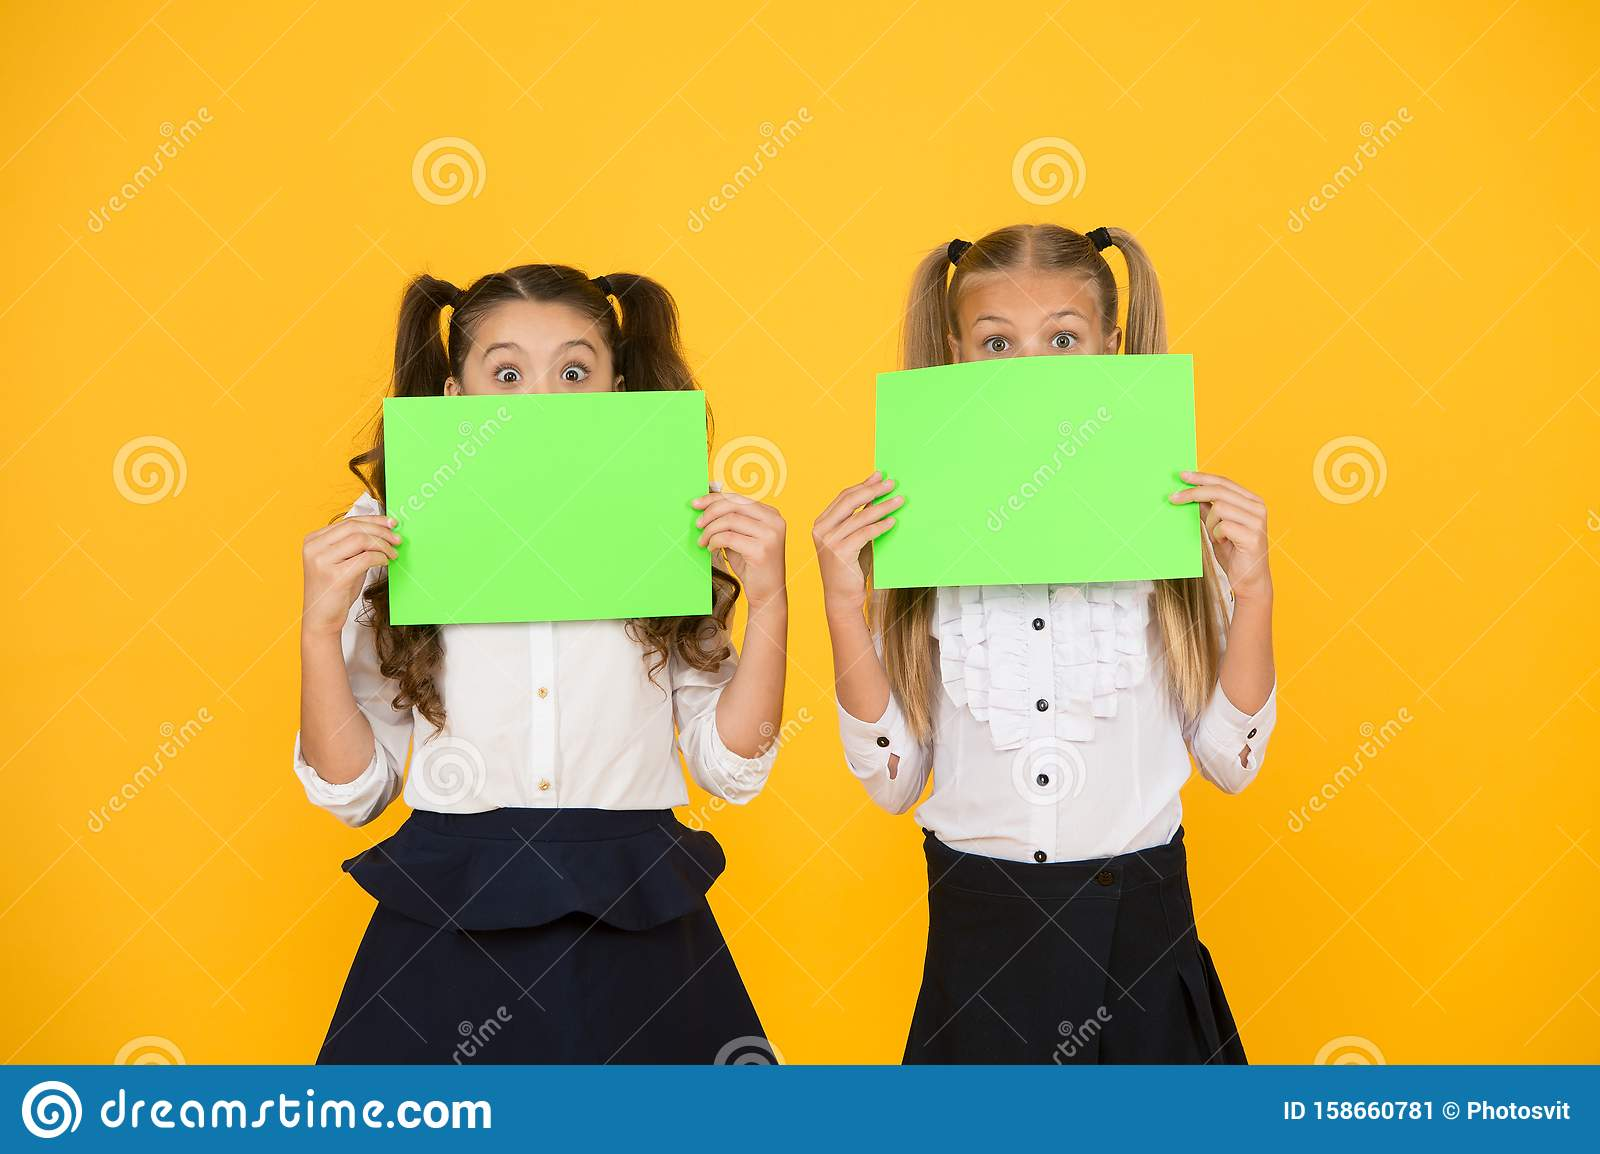 Wow. Little girls holding empty sheets of paper on yellow background. Small children with blank green school paper for